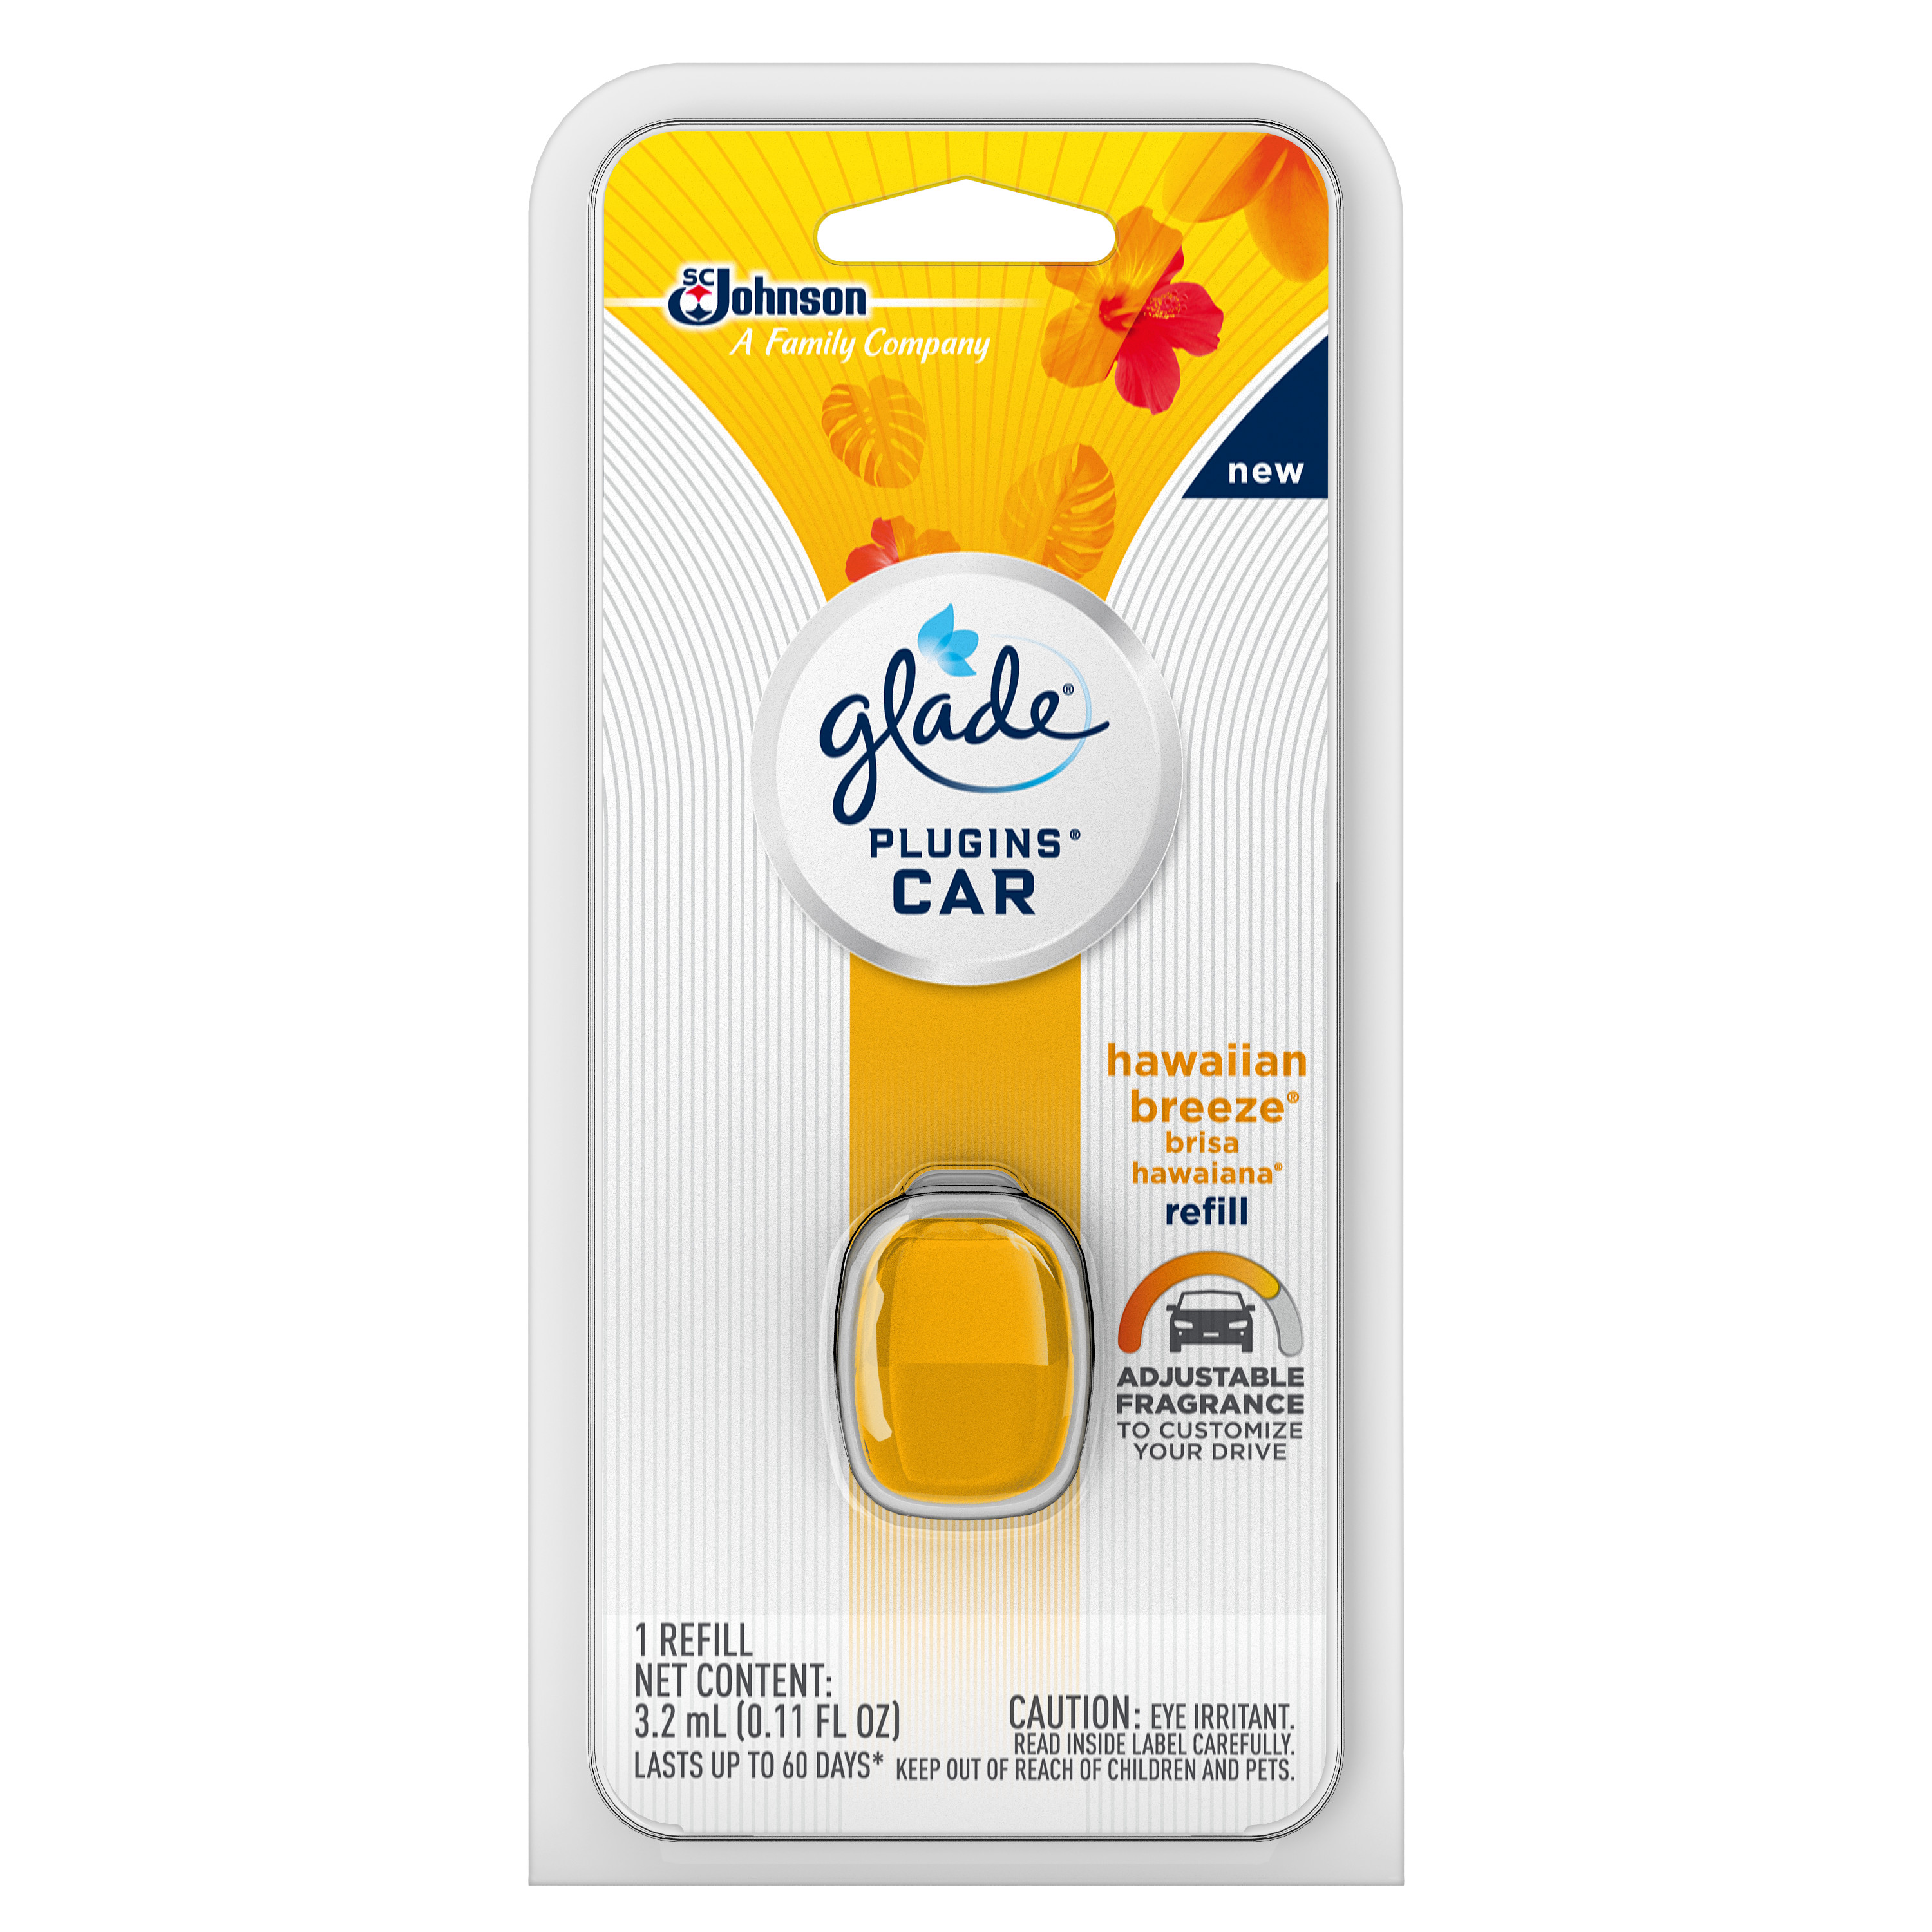 (5 Pack) Glade PlugIns Car Air Freshener Refill, Hawaiian Breeze, 0.11 Fluid Ounces